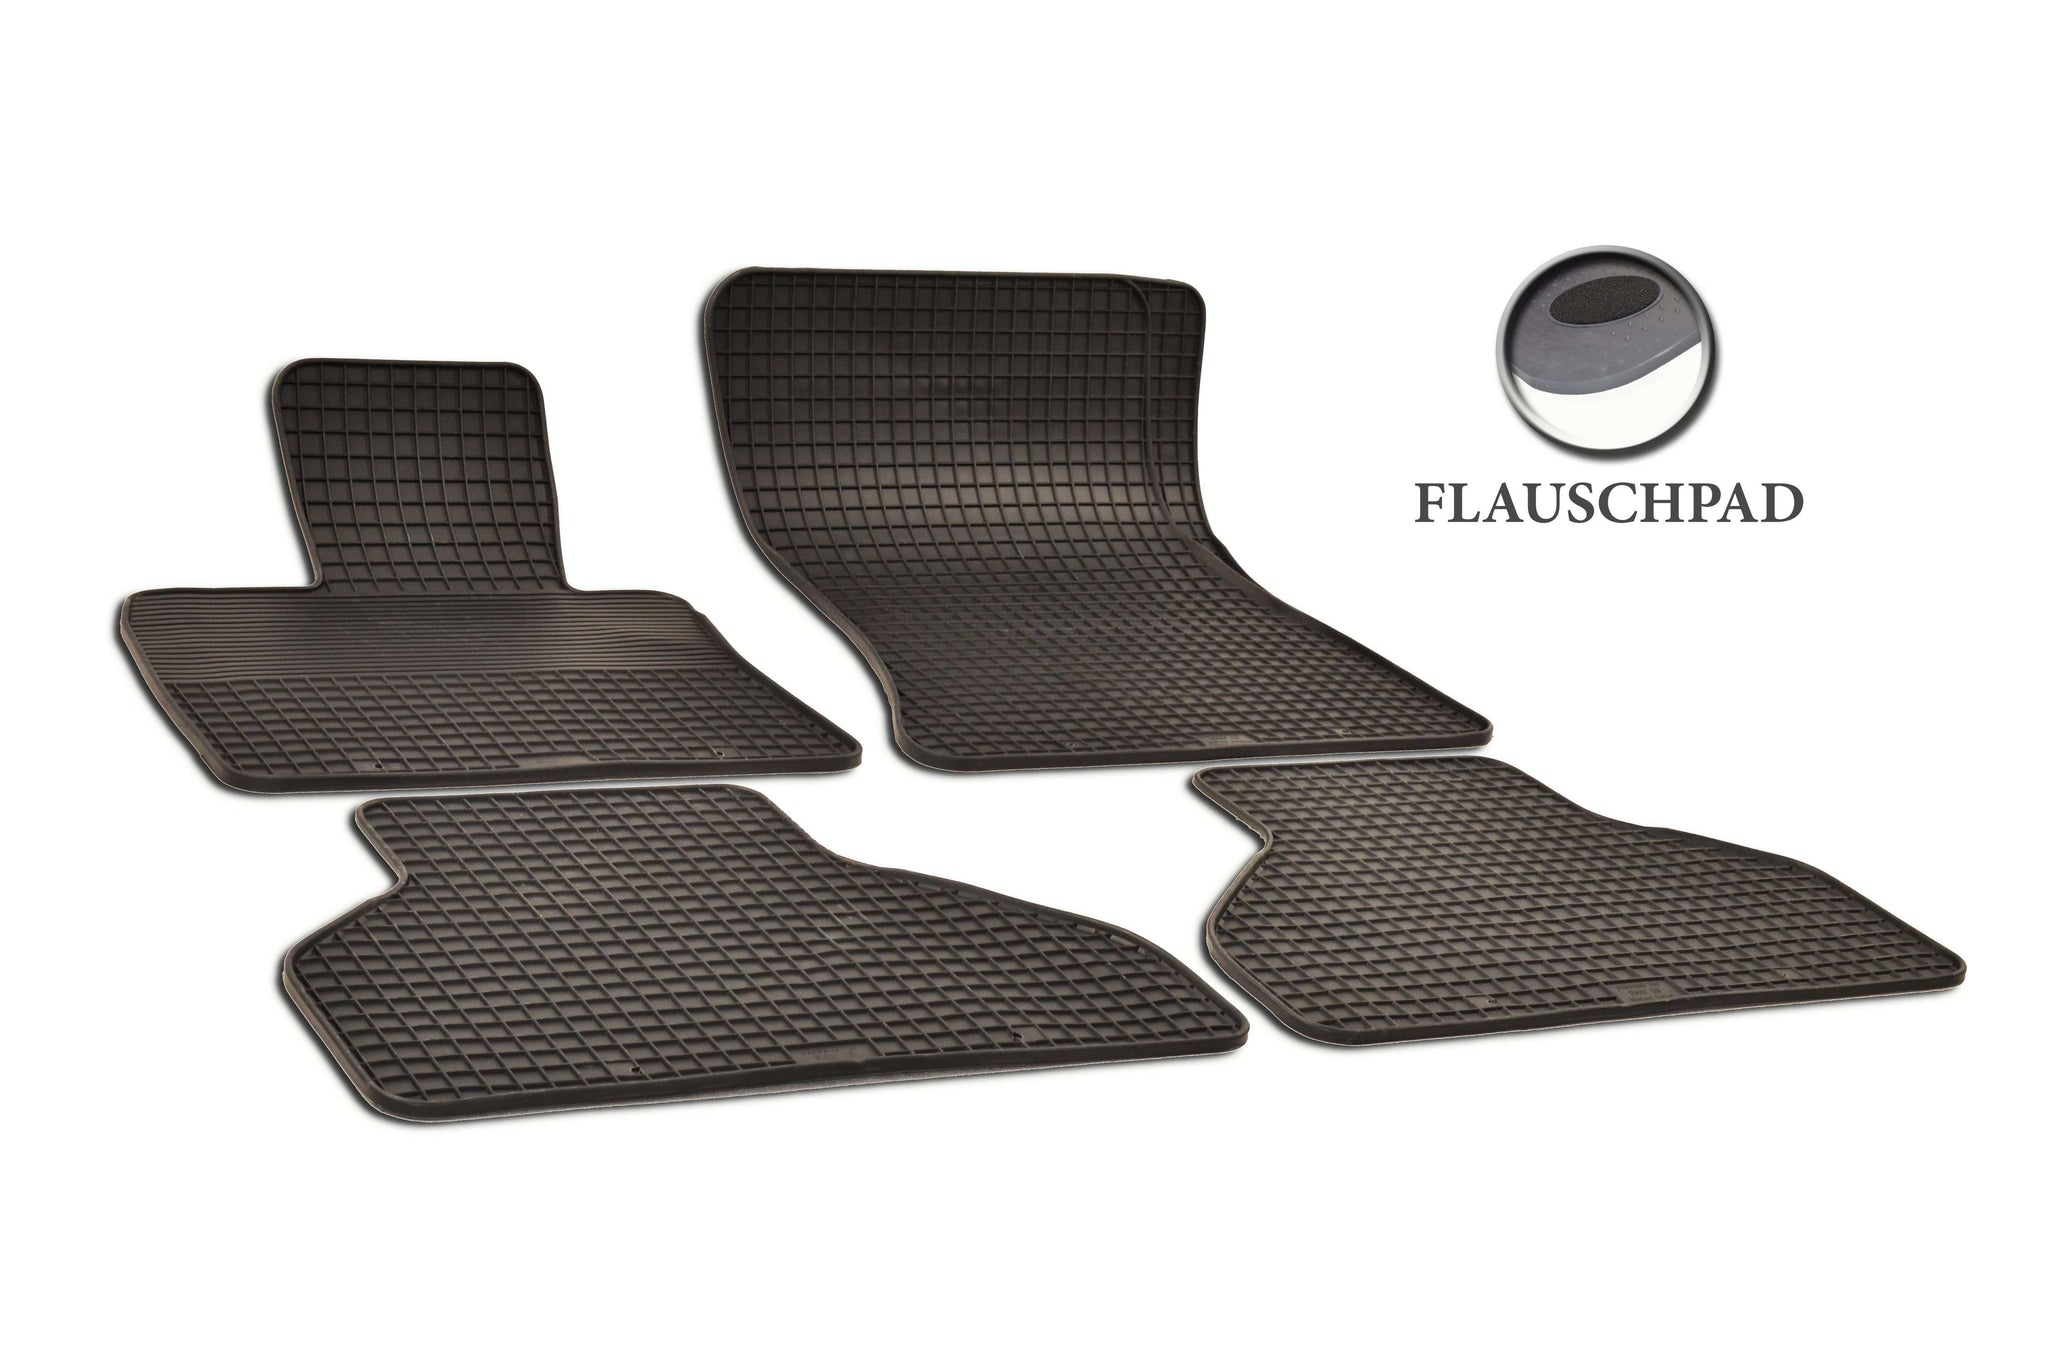 BMW X5 2012 xDrive50i E70 Set of 4 Black Rubber OE Fit All Weather Car Floor Mats